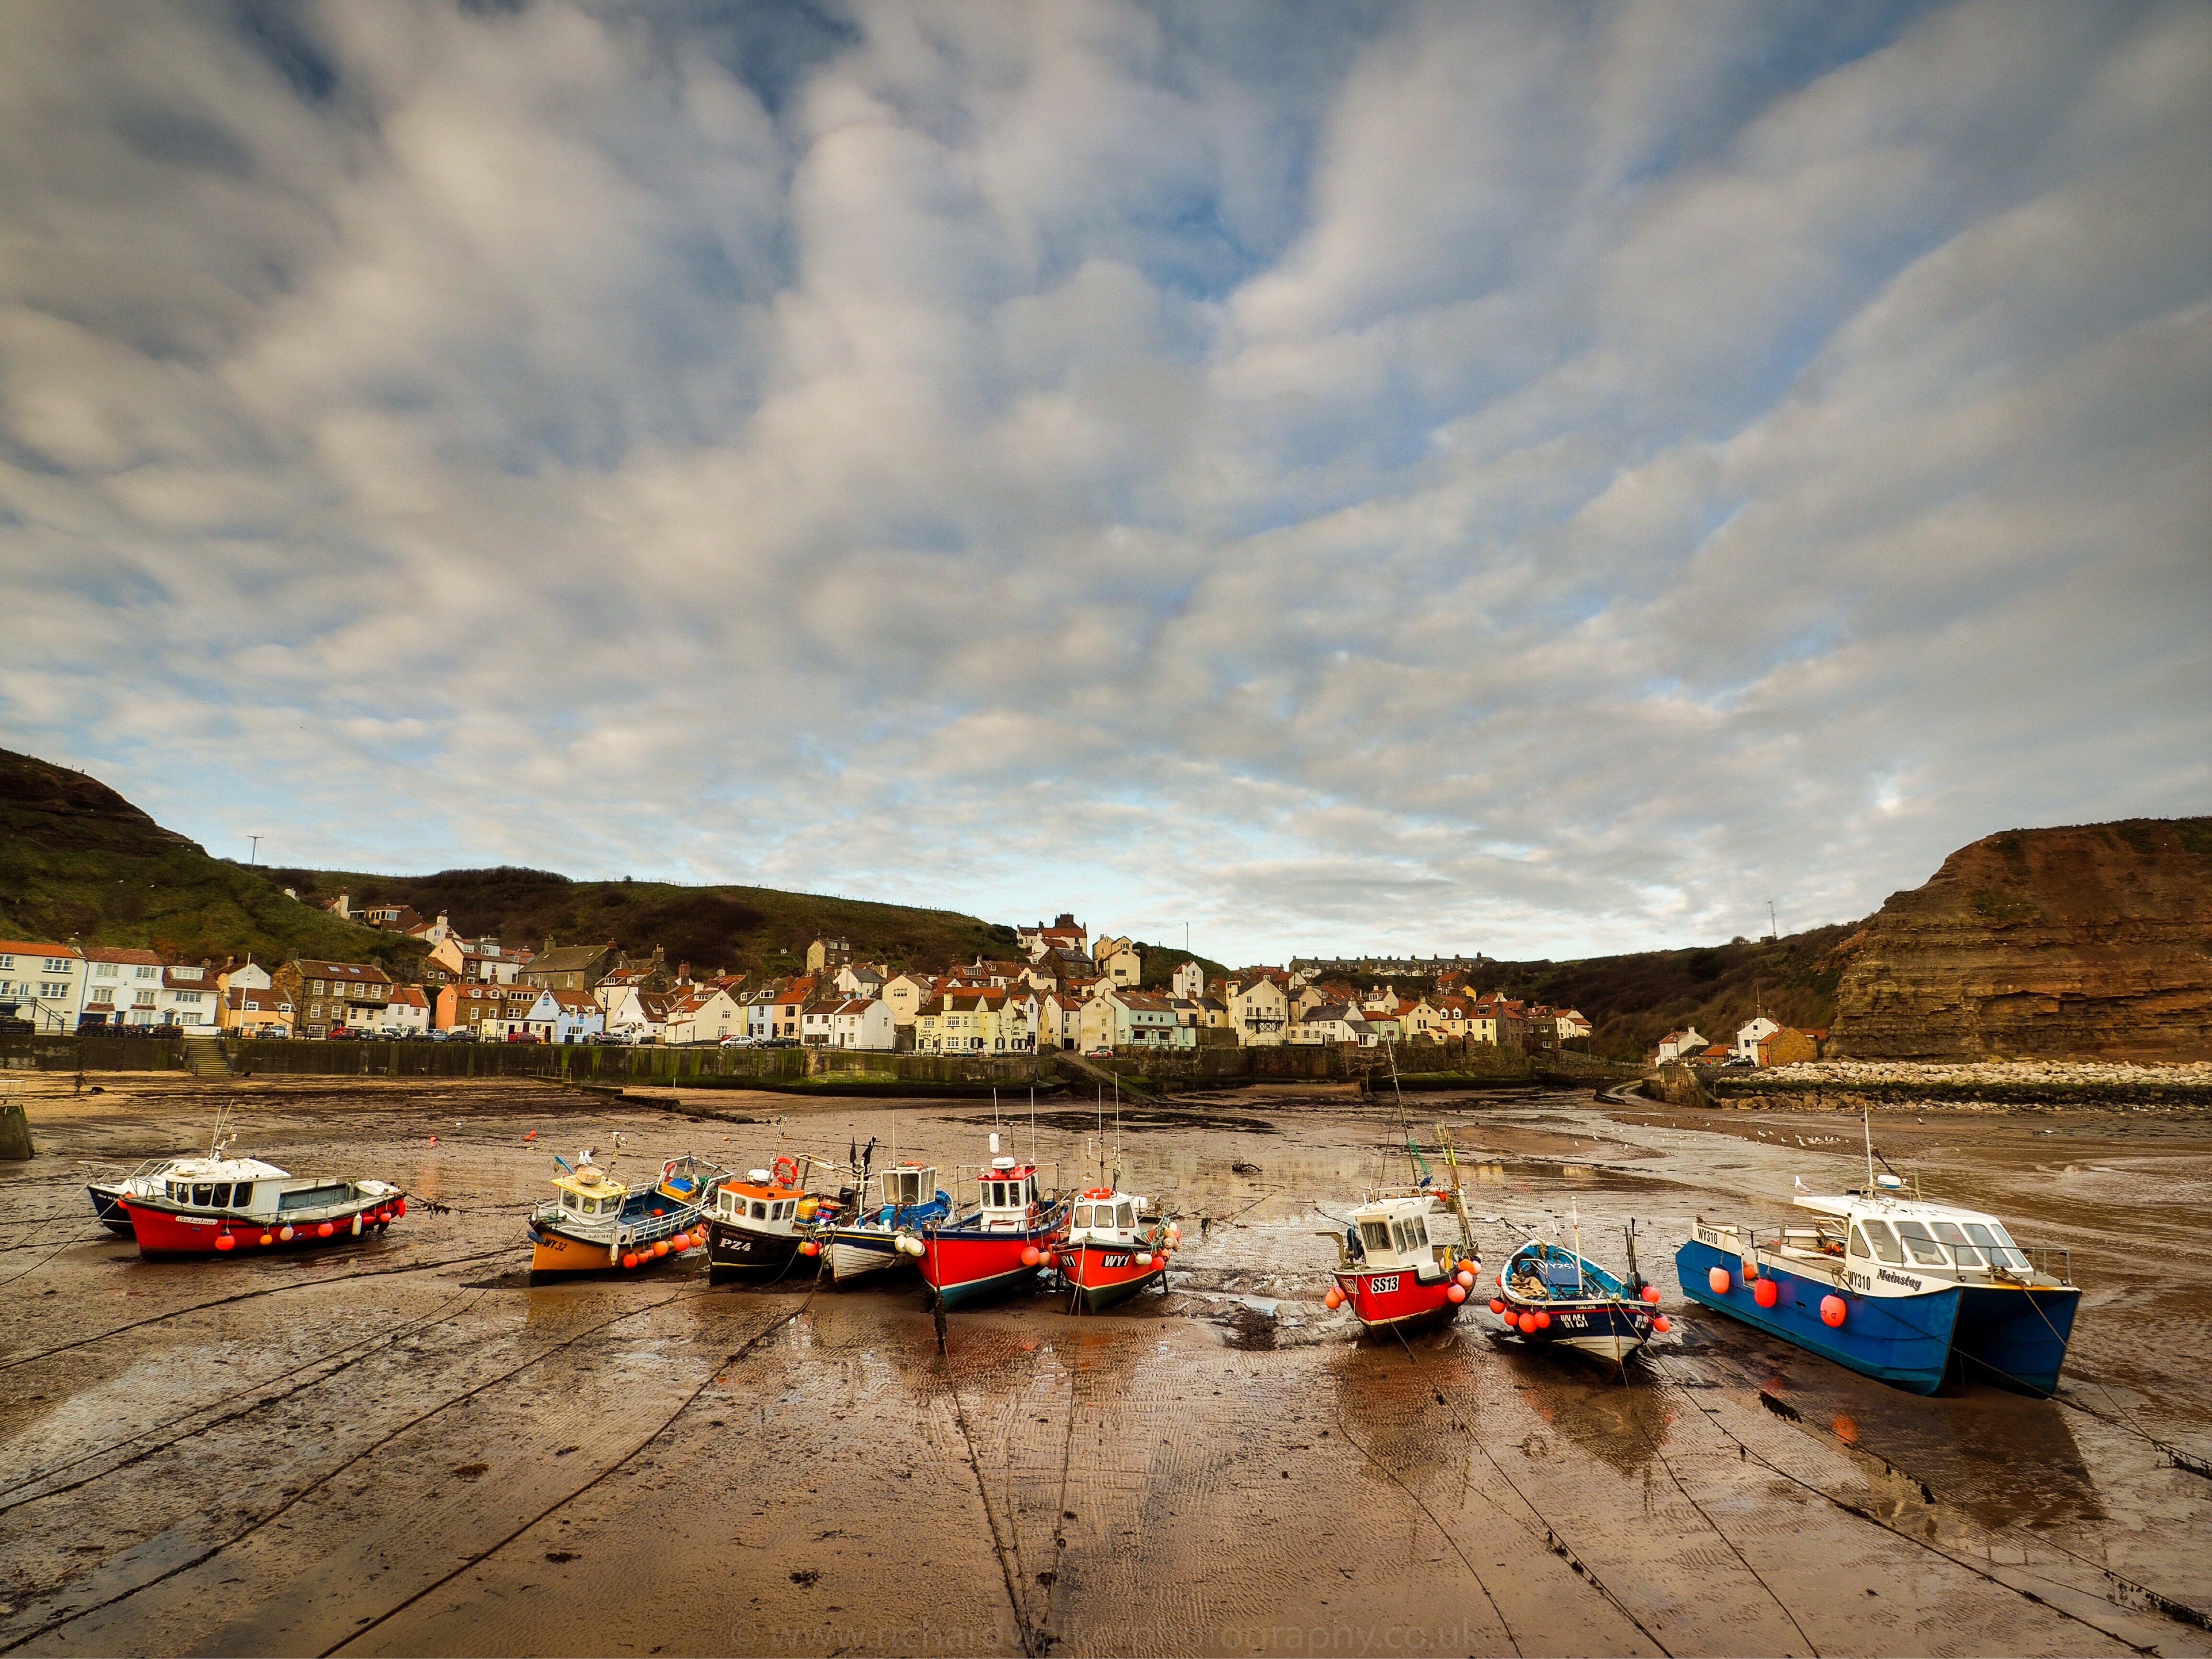 A row of boats in Staithes Harbour in North Yorkshire